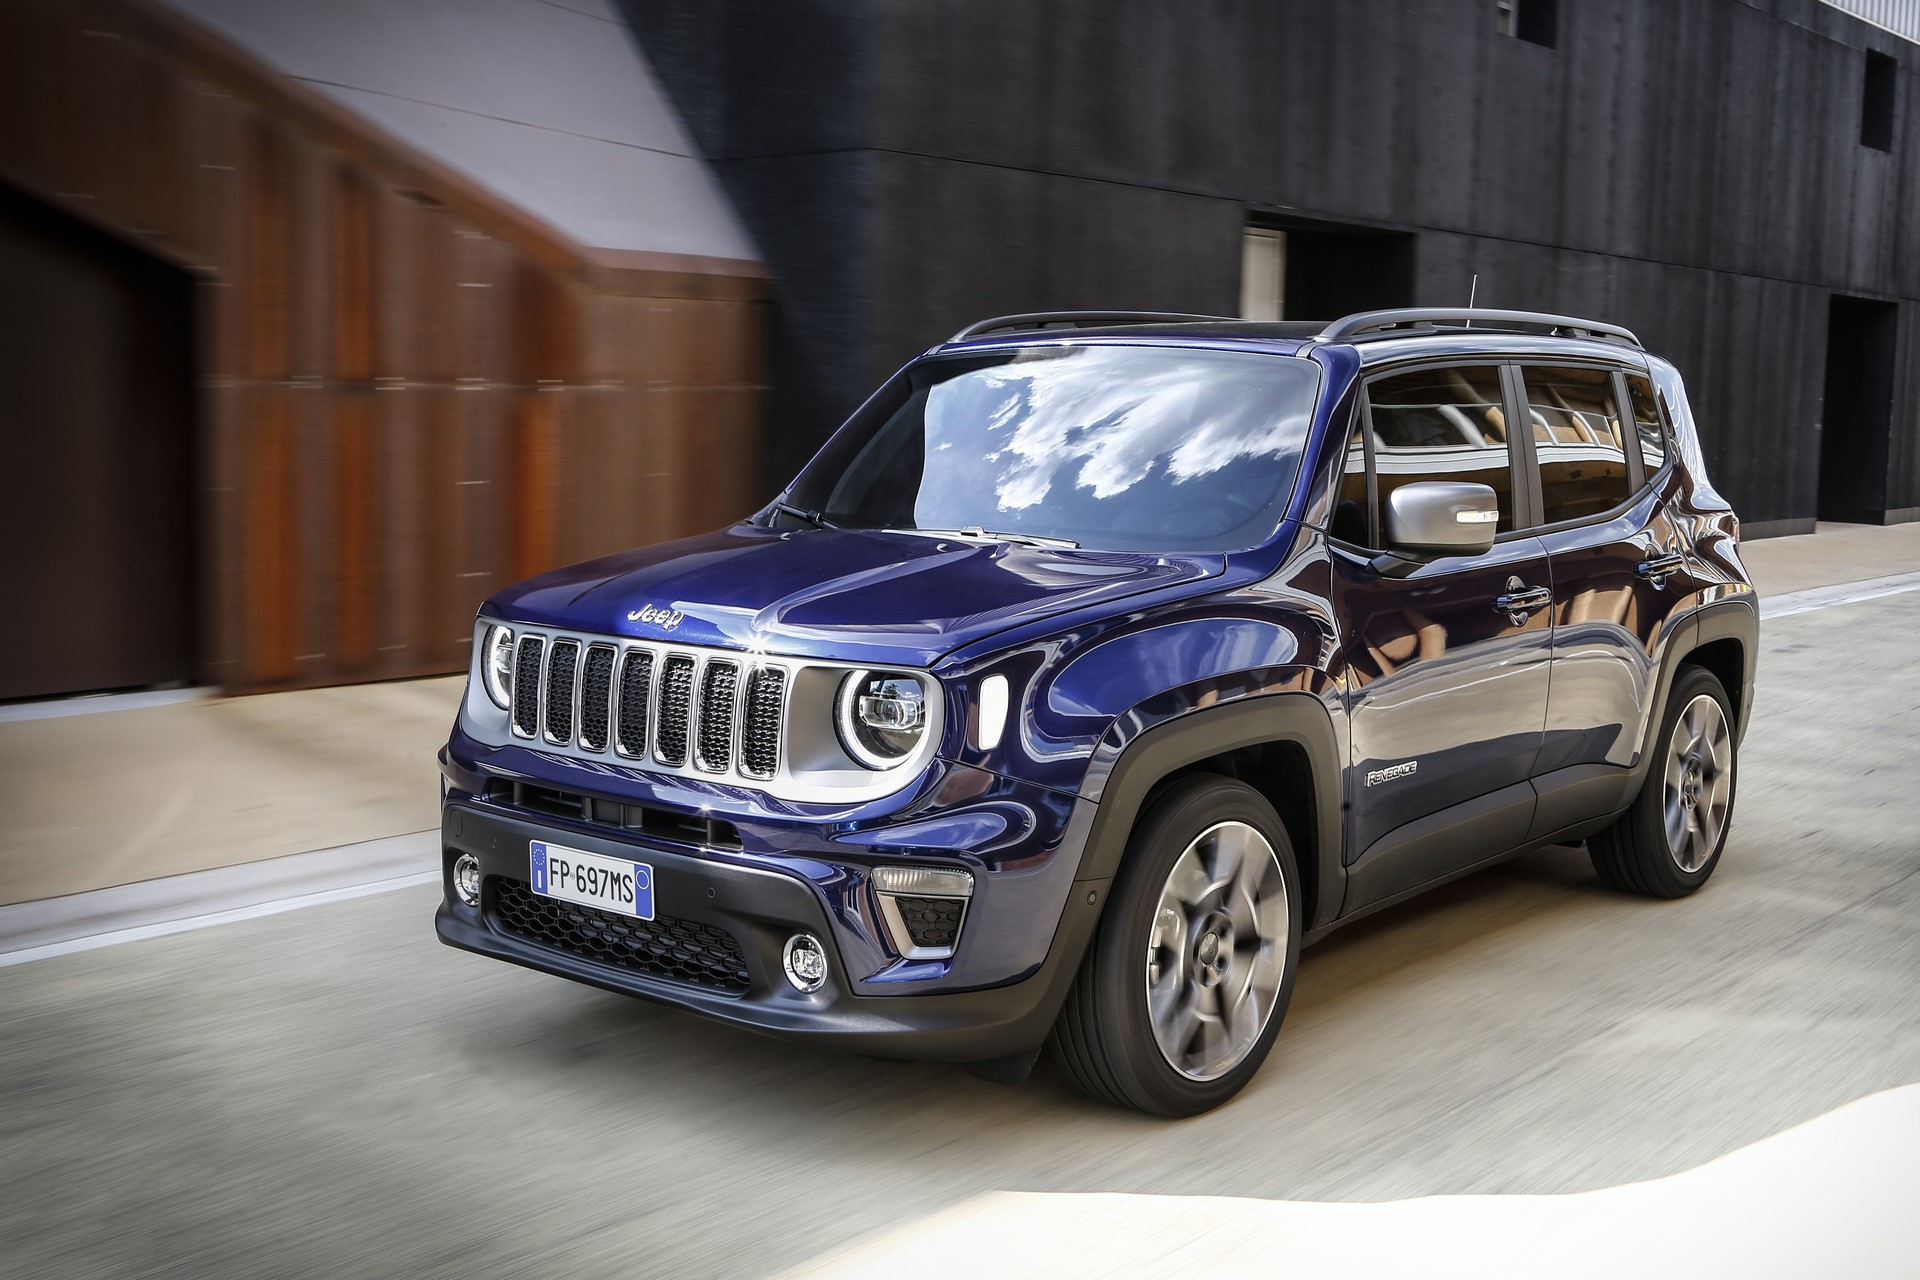 Jeep Renegade facelift 2019 (5)